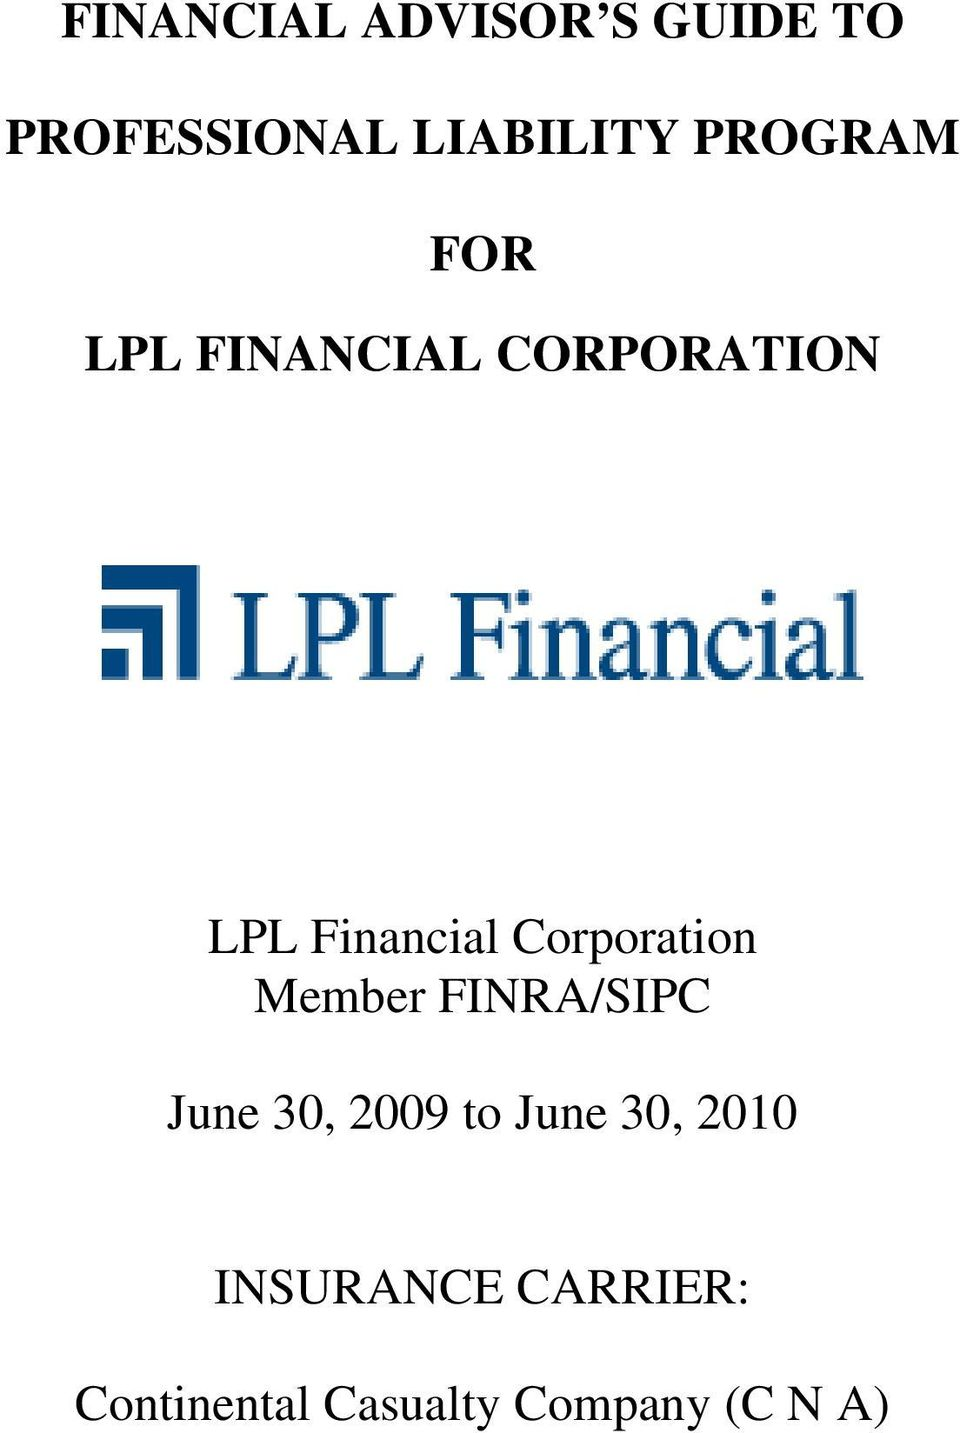 Member FINRA/SIPC June 30, 2009 to June 30, 2010